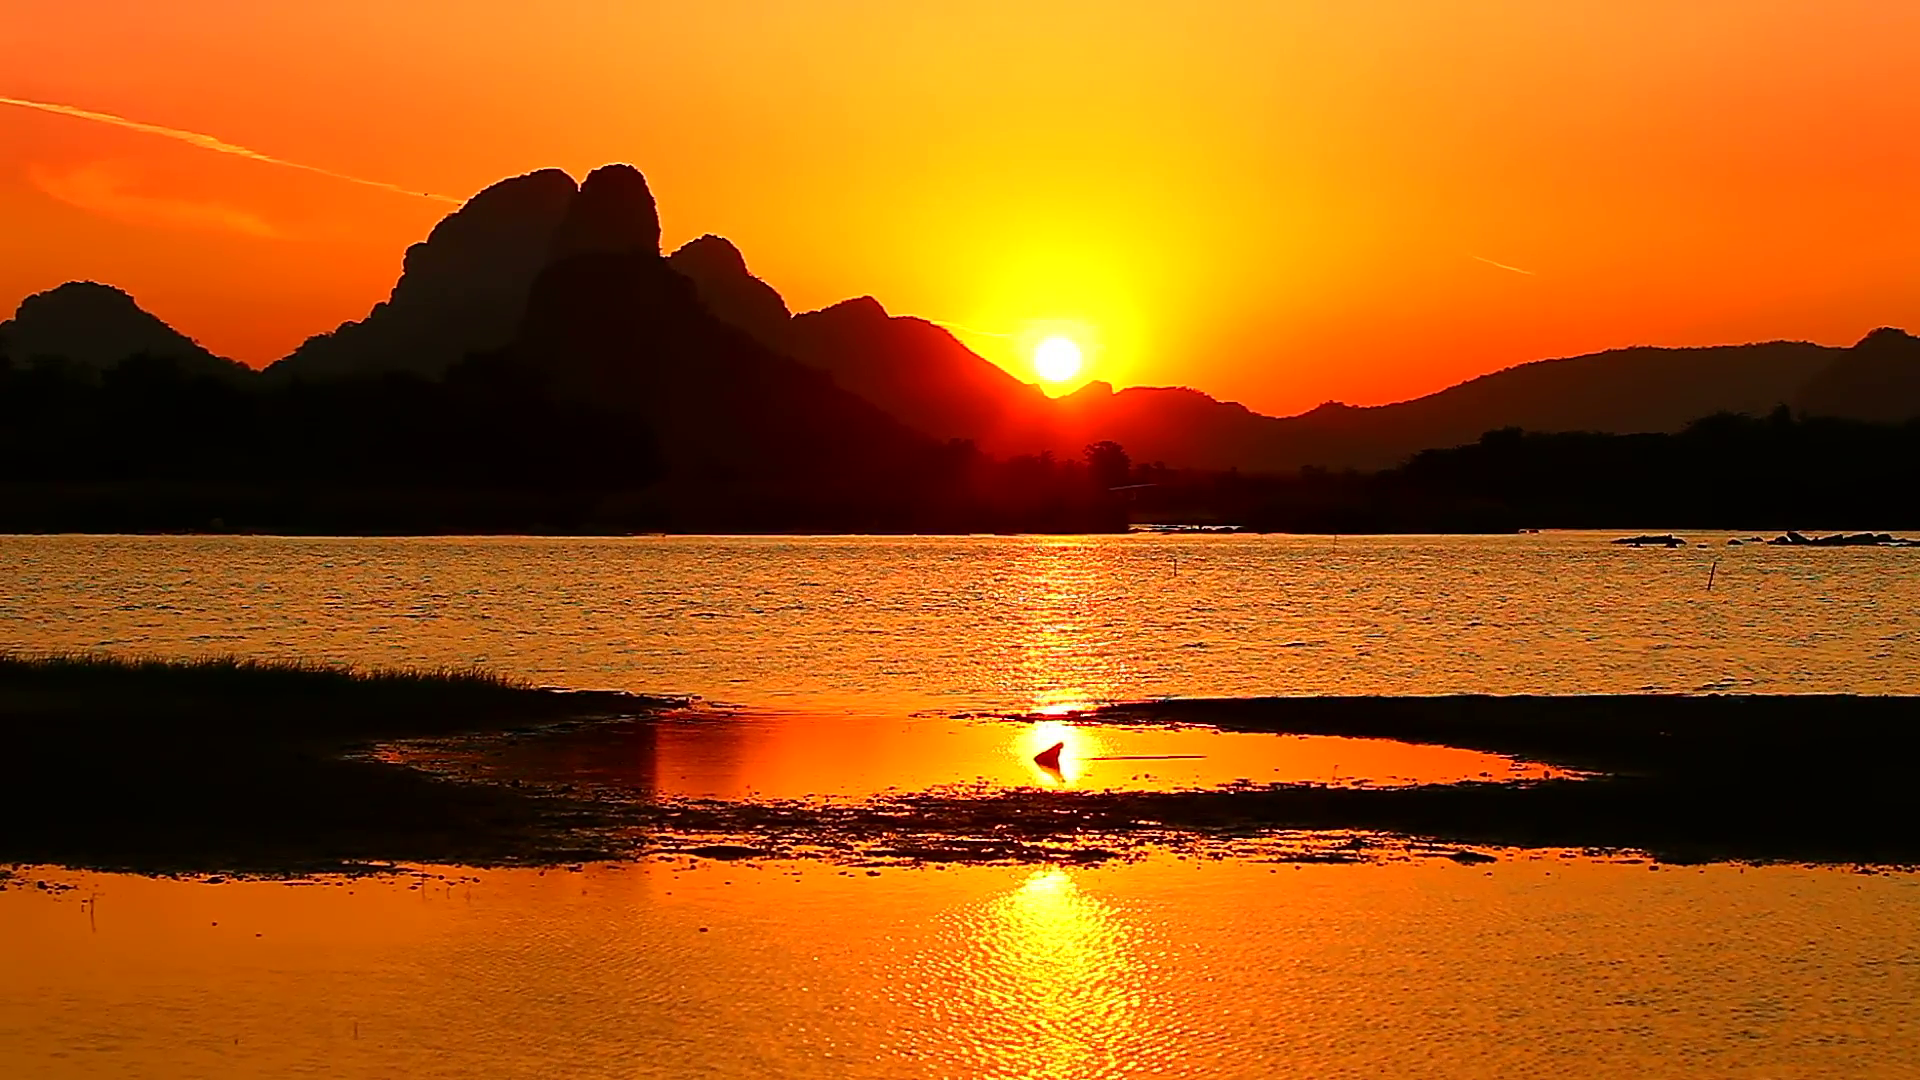 Sunset PNG HD Transparent Sunset HD.PNG Images.